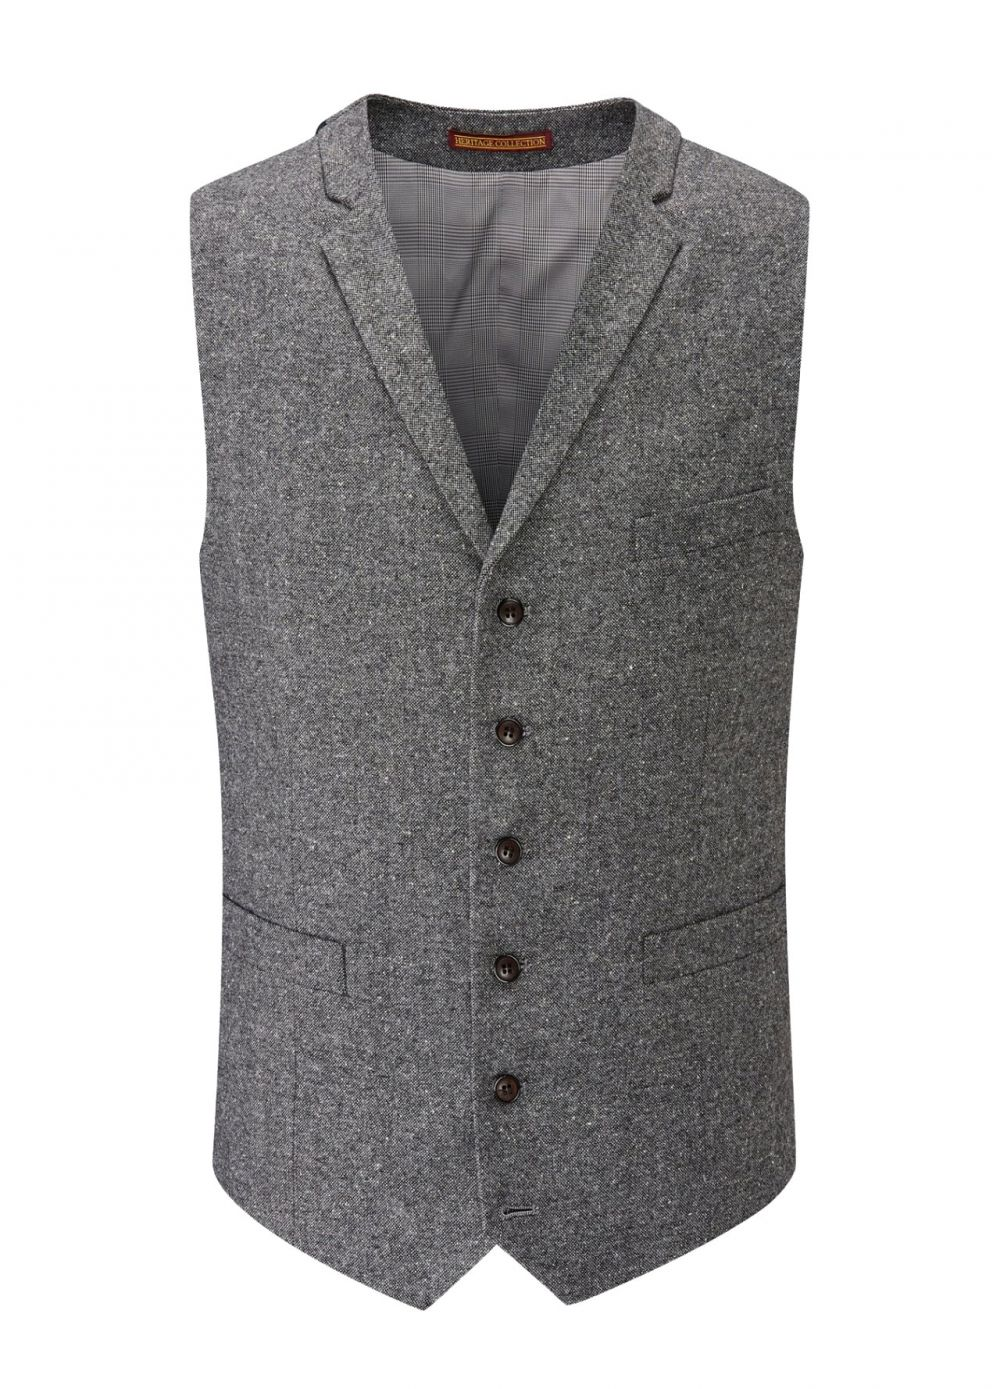 heritage collection grafton waistcoat